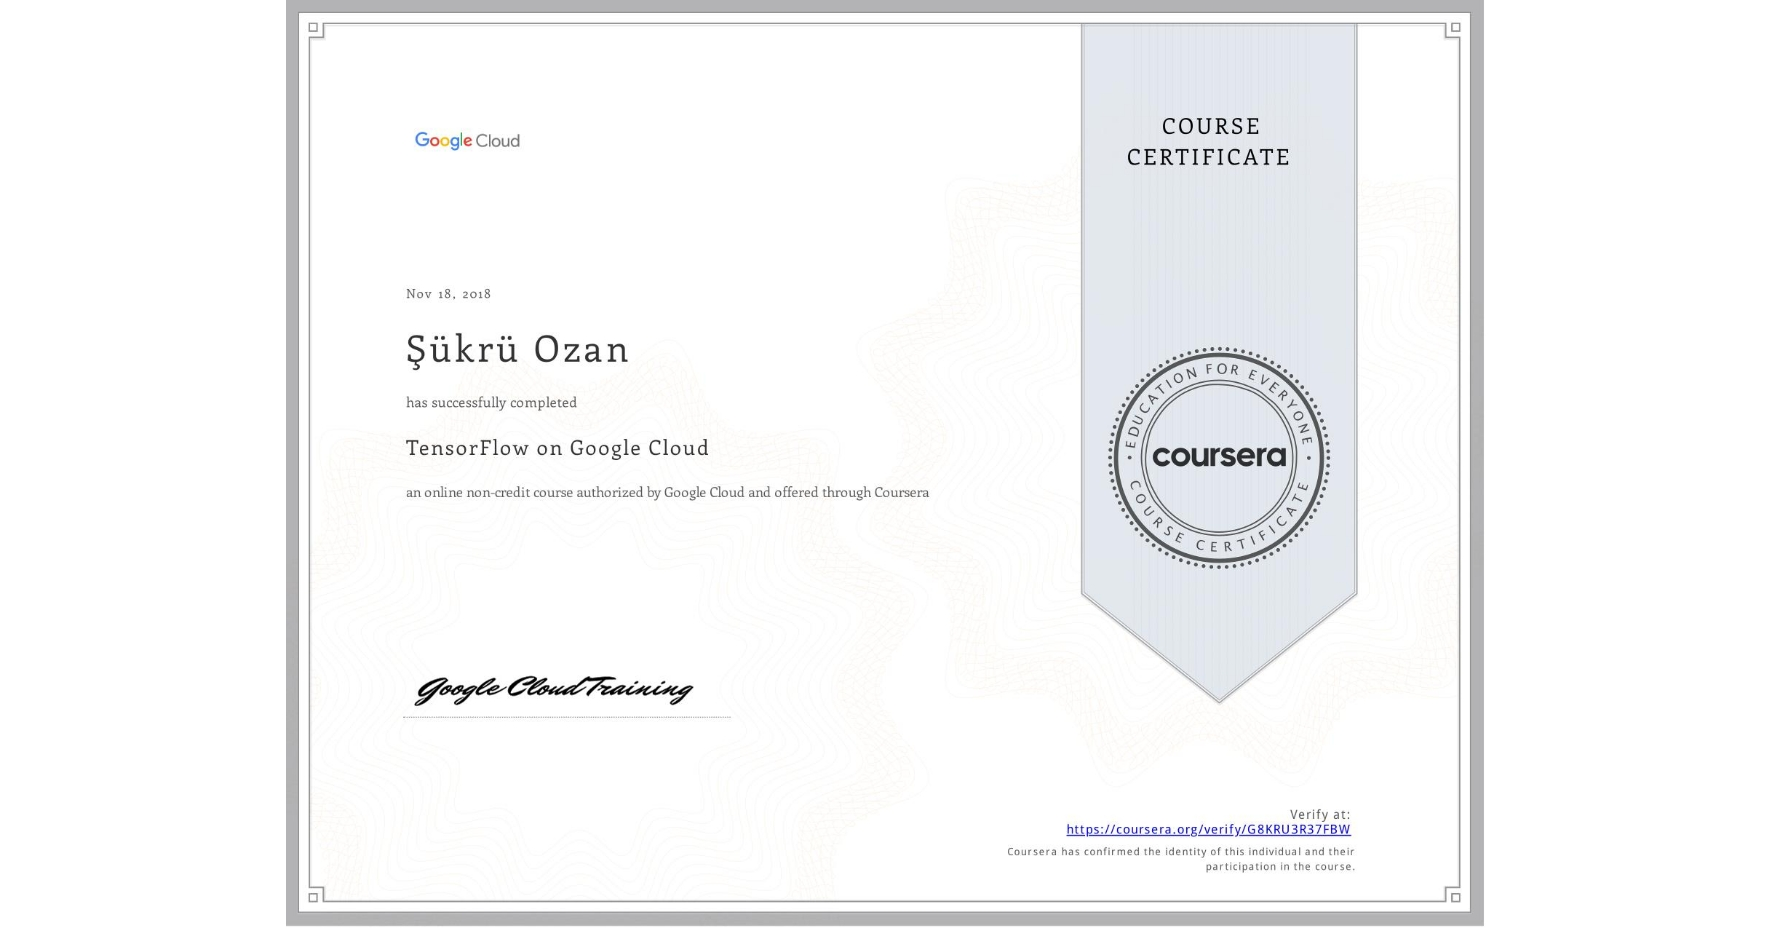 View certificate for Şükrü Ozan, Introduction to TensorFlow, an online non-credit course authorized by Google Cloud and offered through Coursera